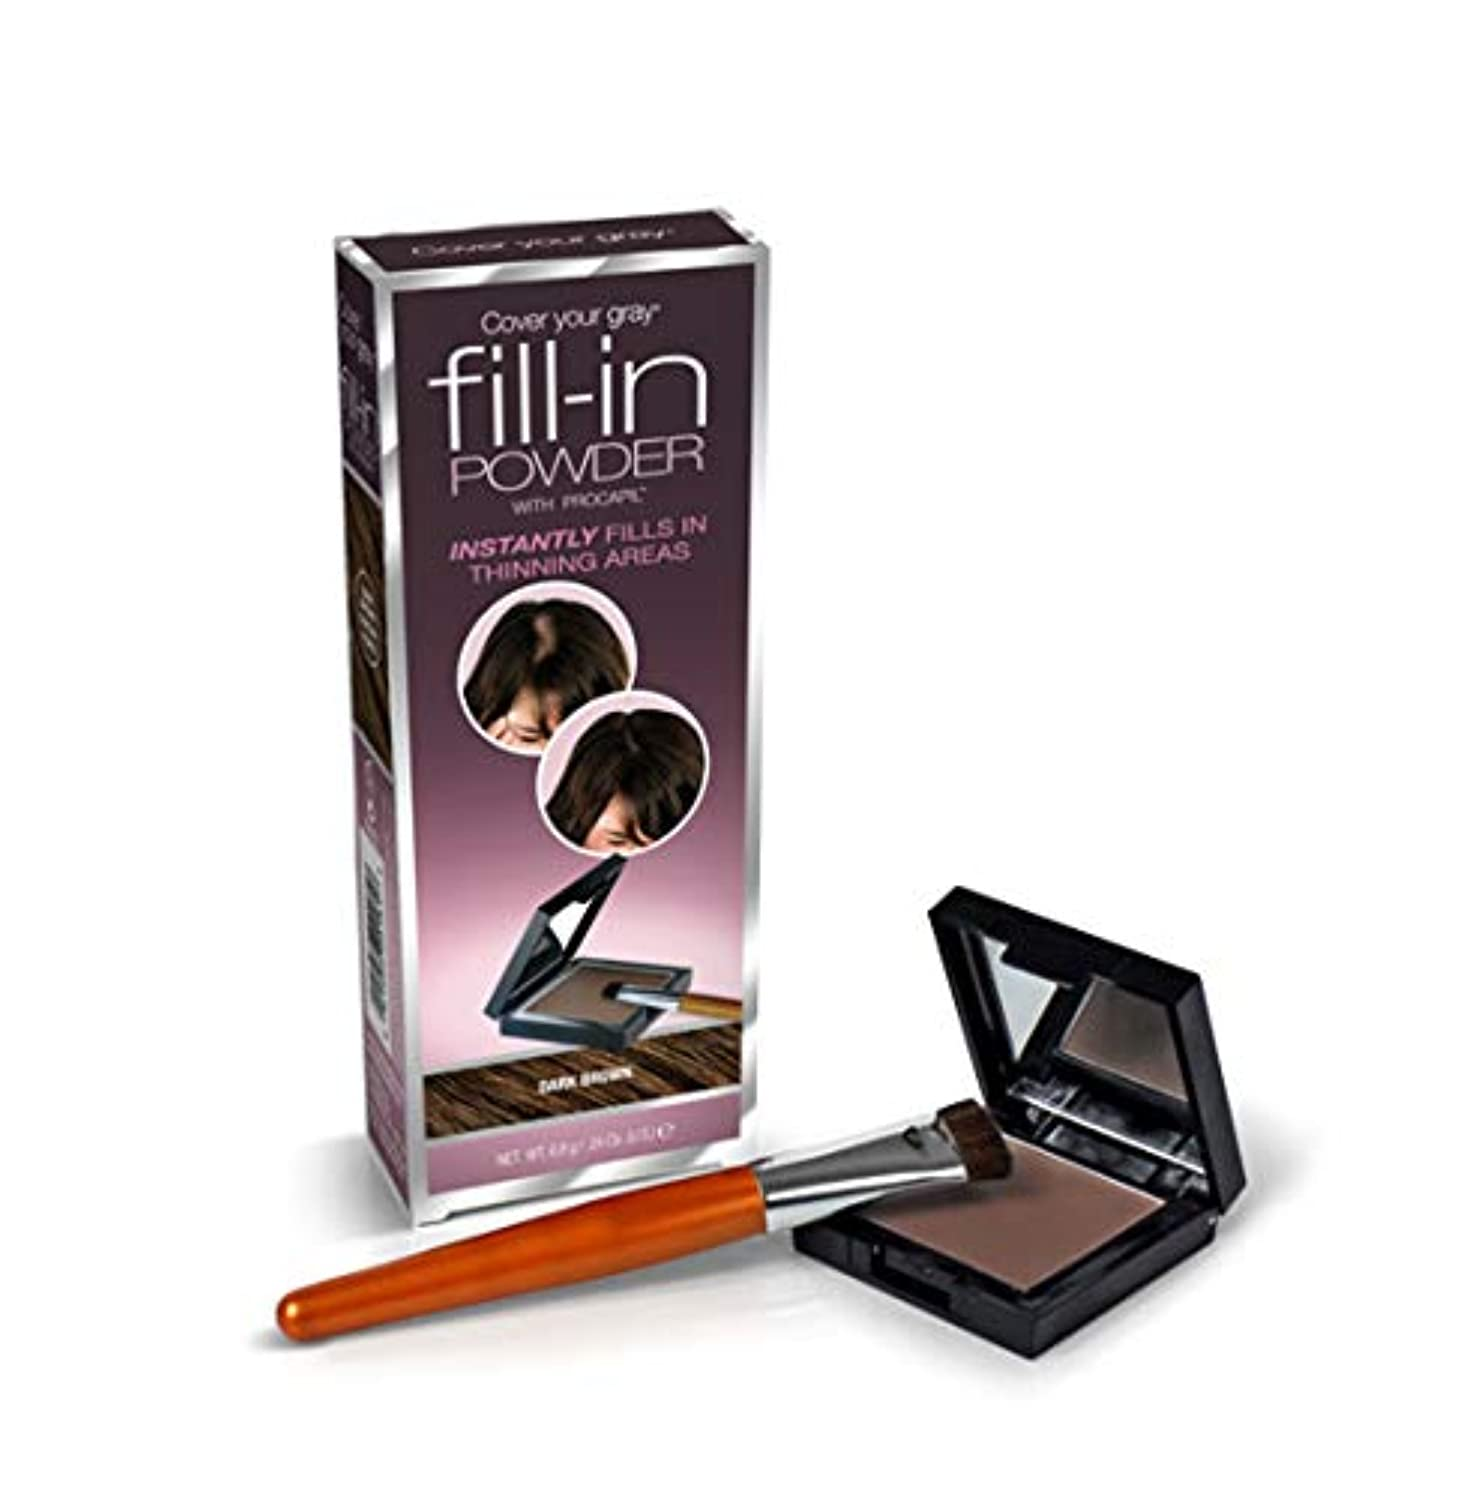 文法アクティビティ幻影Cover Your Gray Fill In Powder for women Instant Touch Up DARK BROWN by FILL-IN